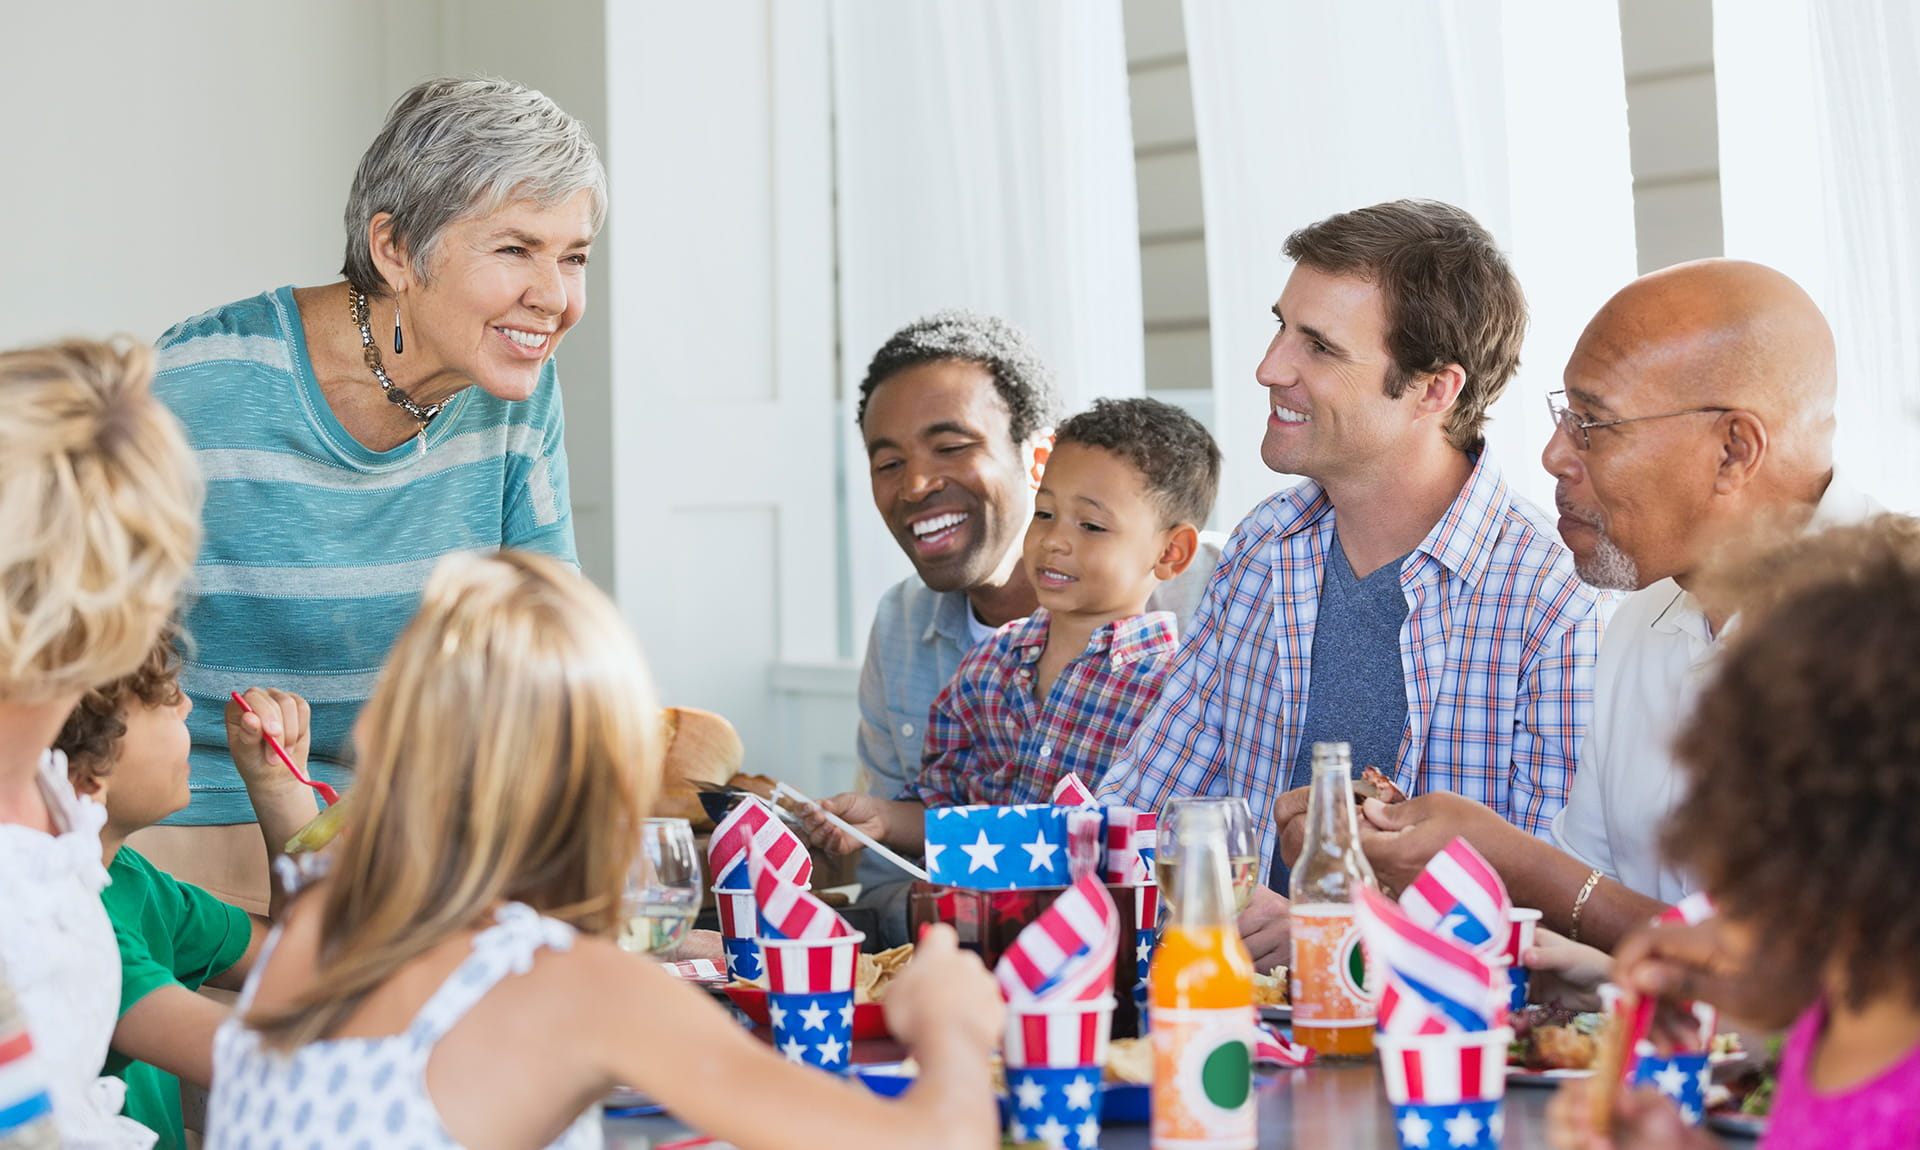 A family celebrating fourth of july